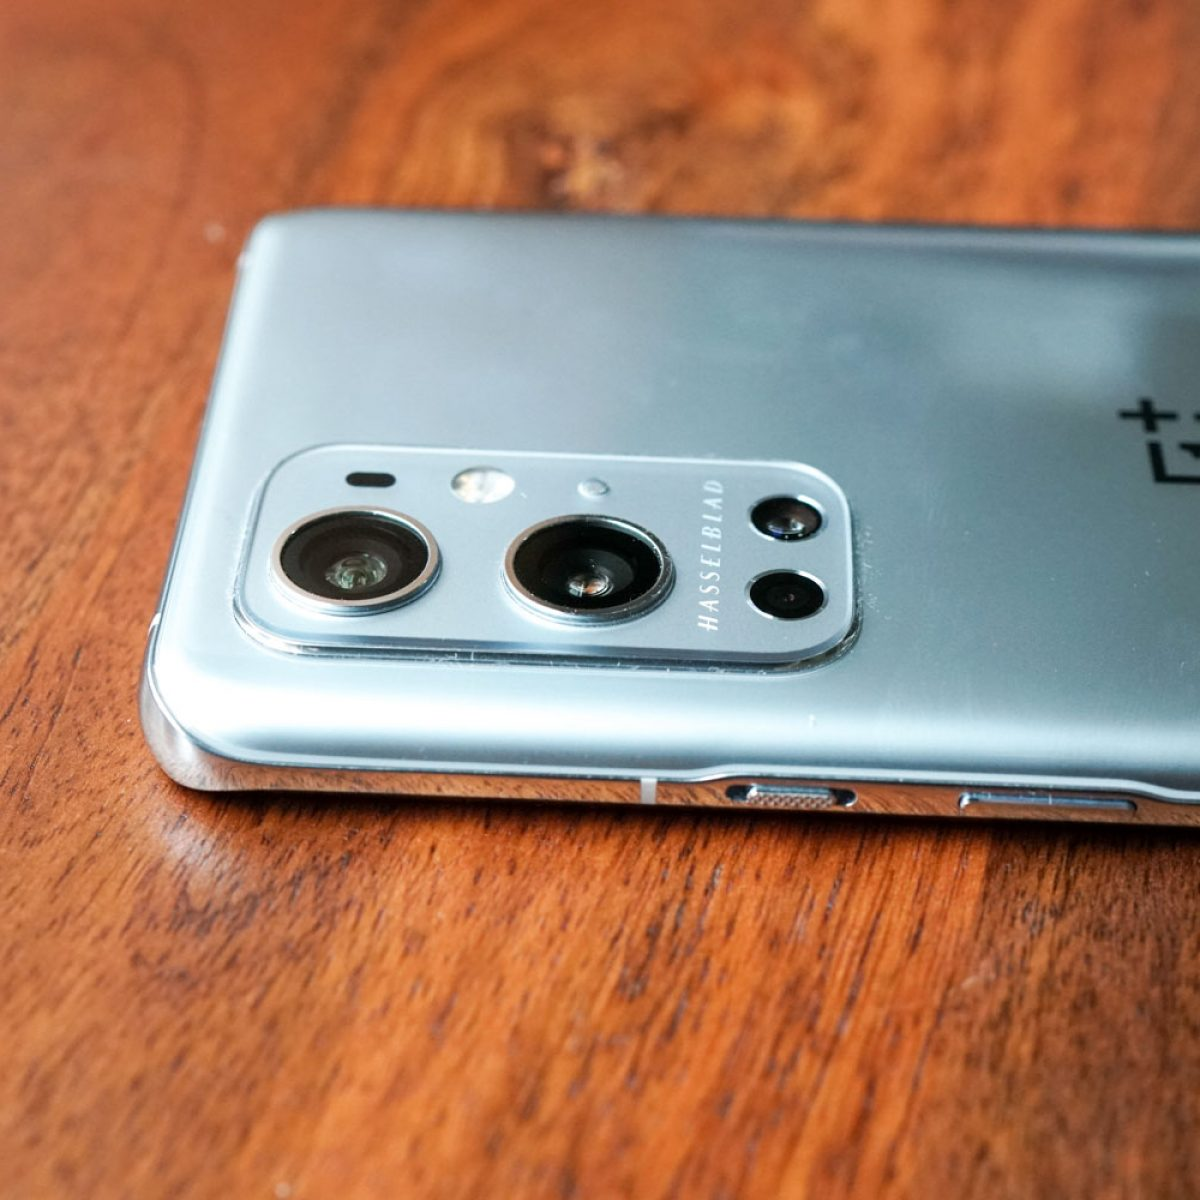 1 OnePlus 9 Pro Review 1200x1200 cropped - OnePlus 9 Pro price in Nigeria, details & Full specs